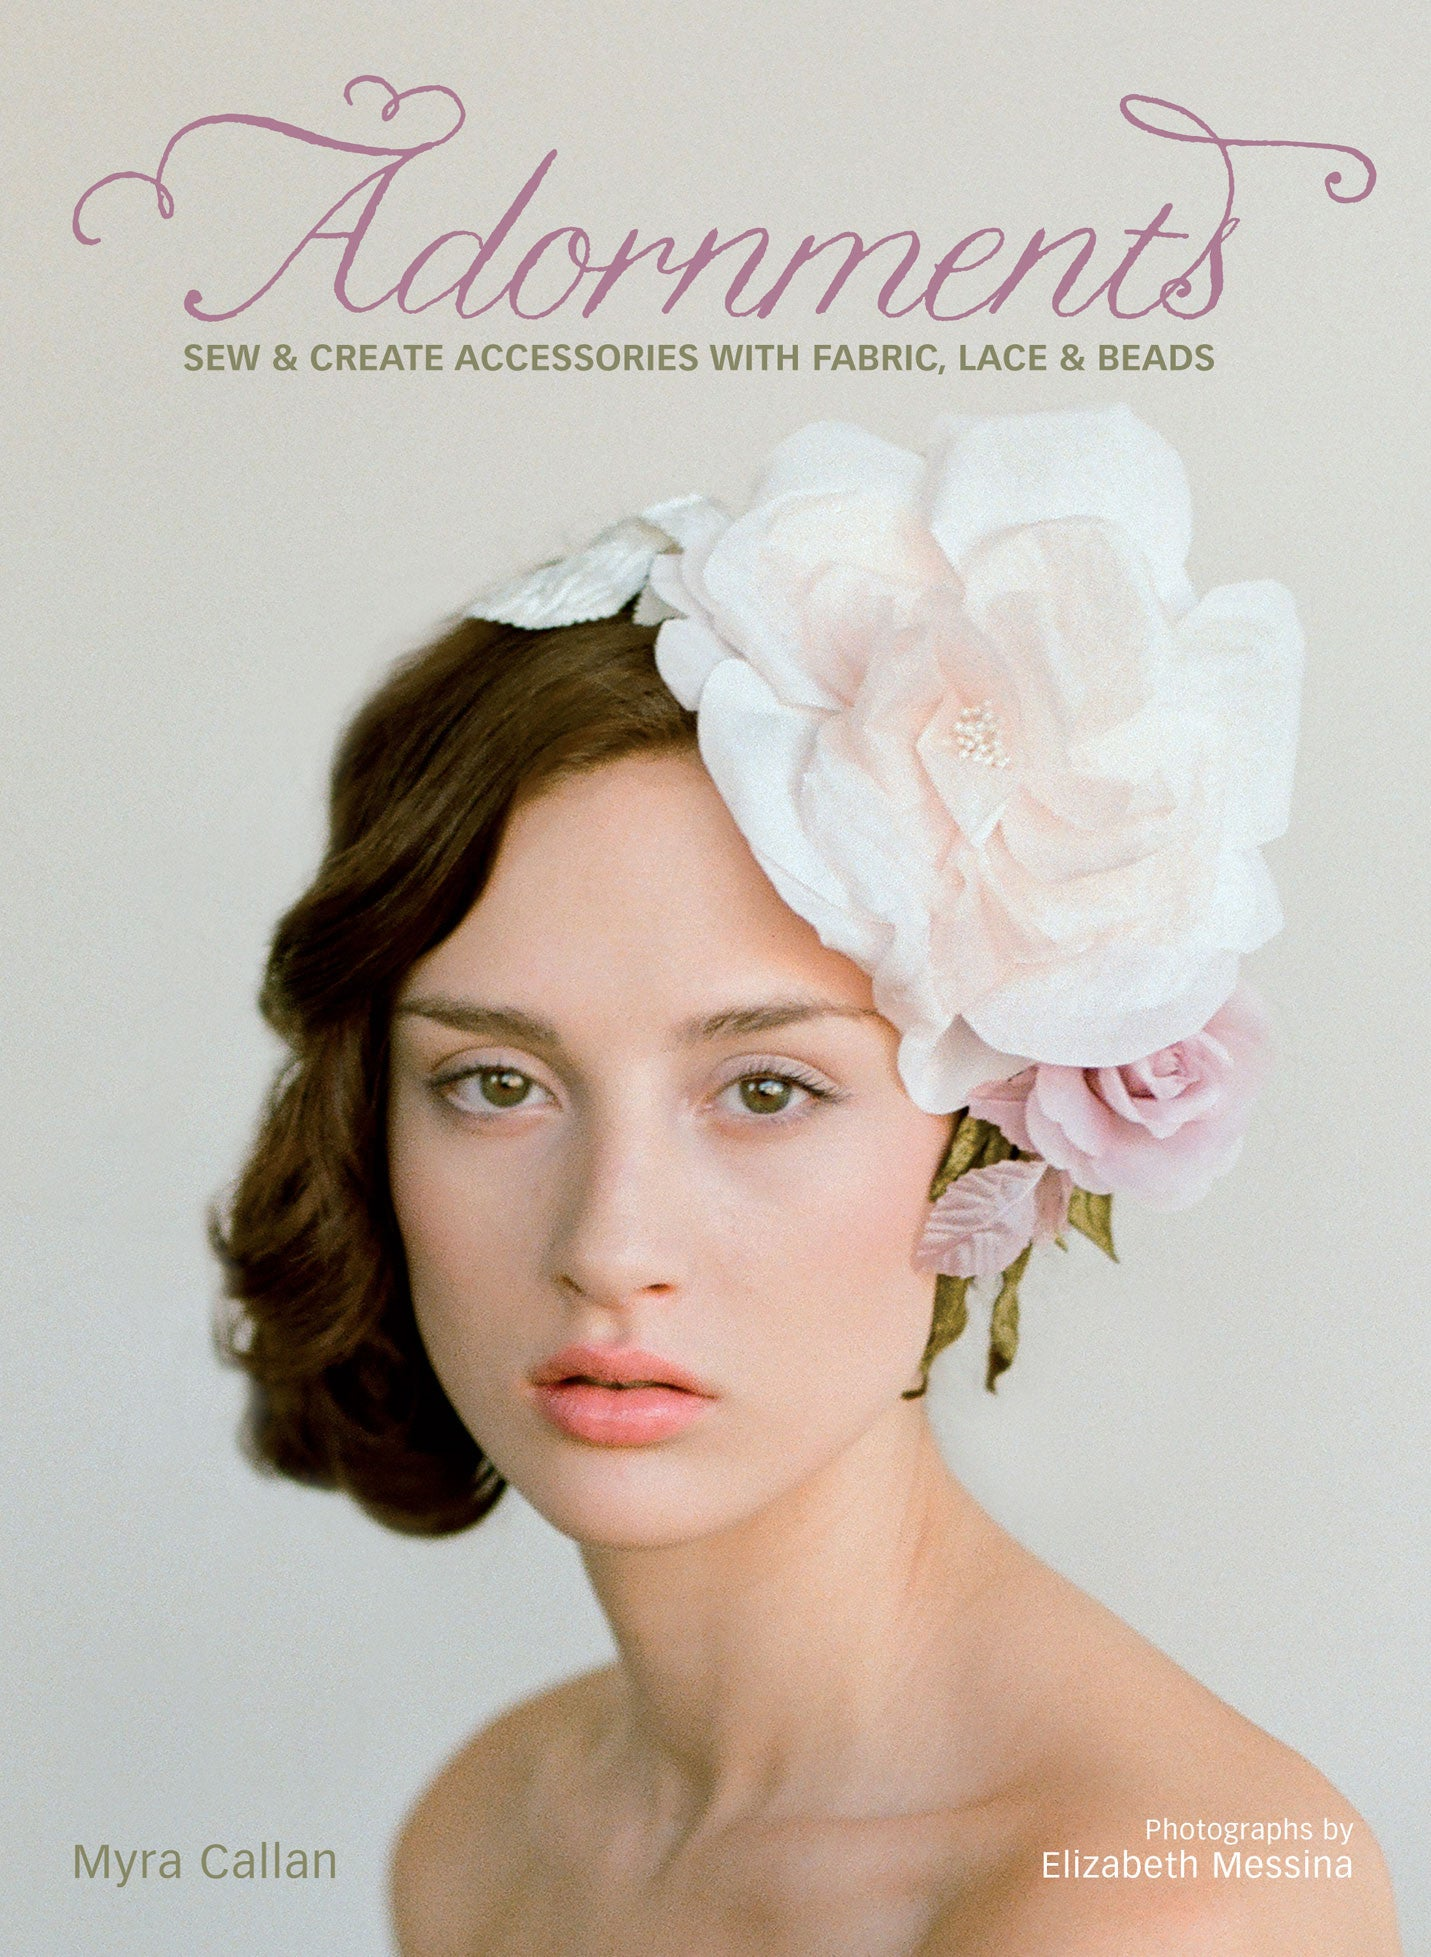 Adornments: Sew & Create Accessories with Fabric, Lace & Beads - Signed copy